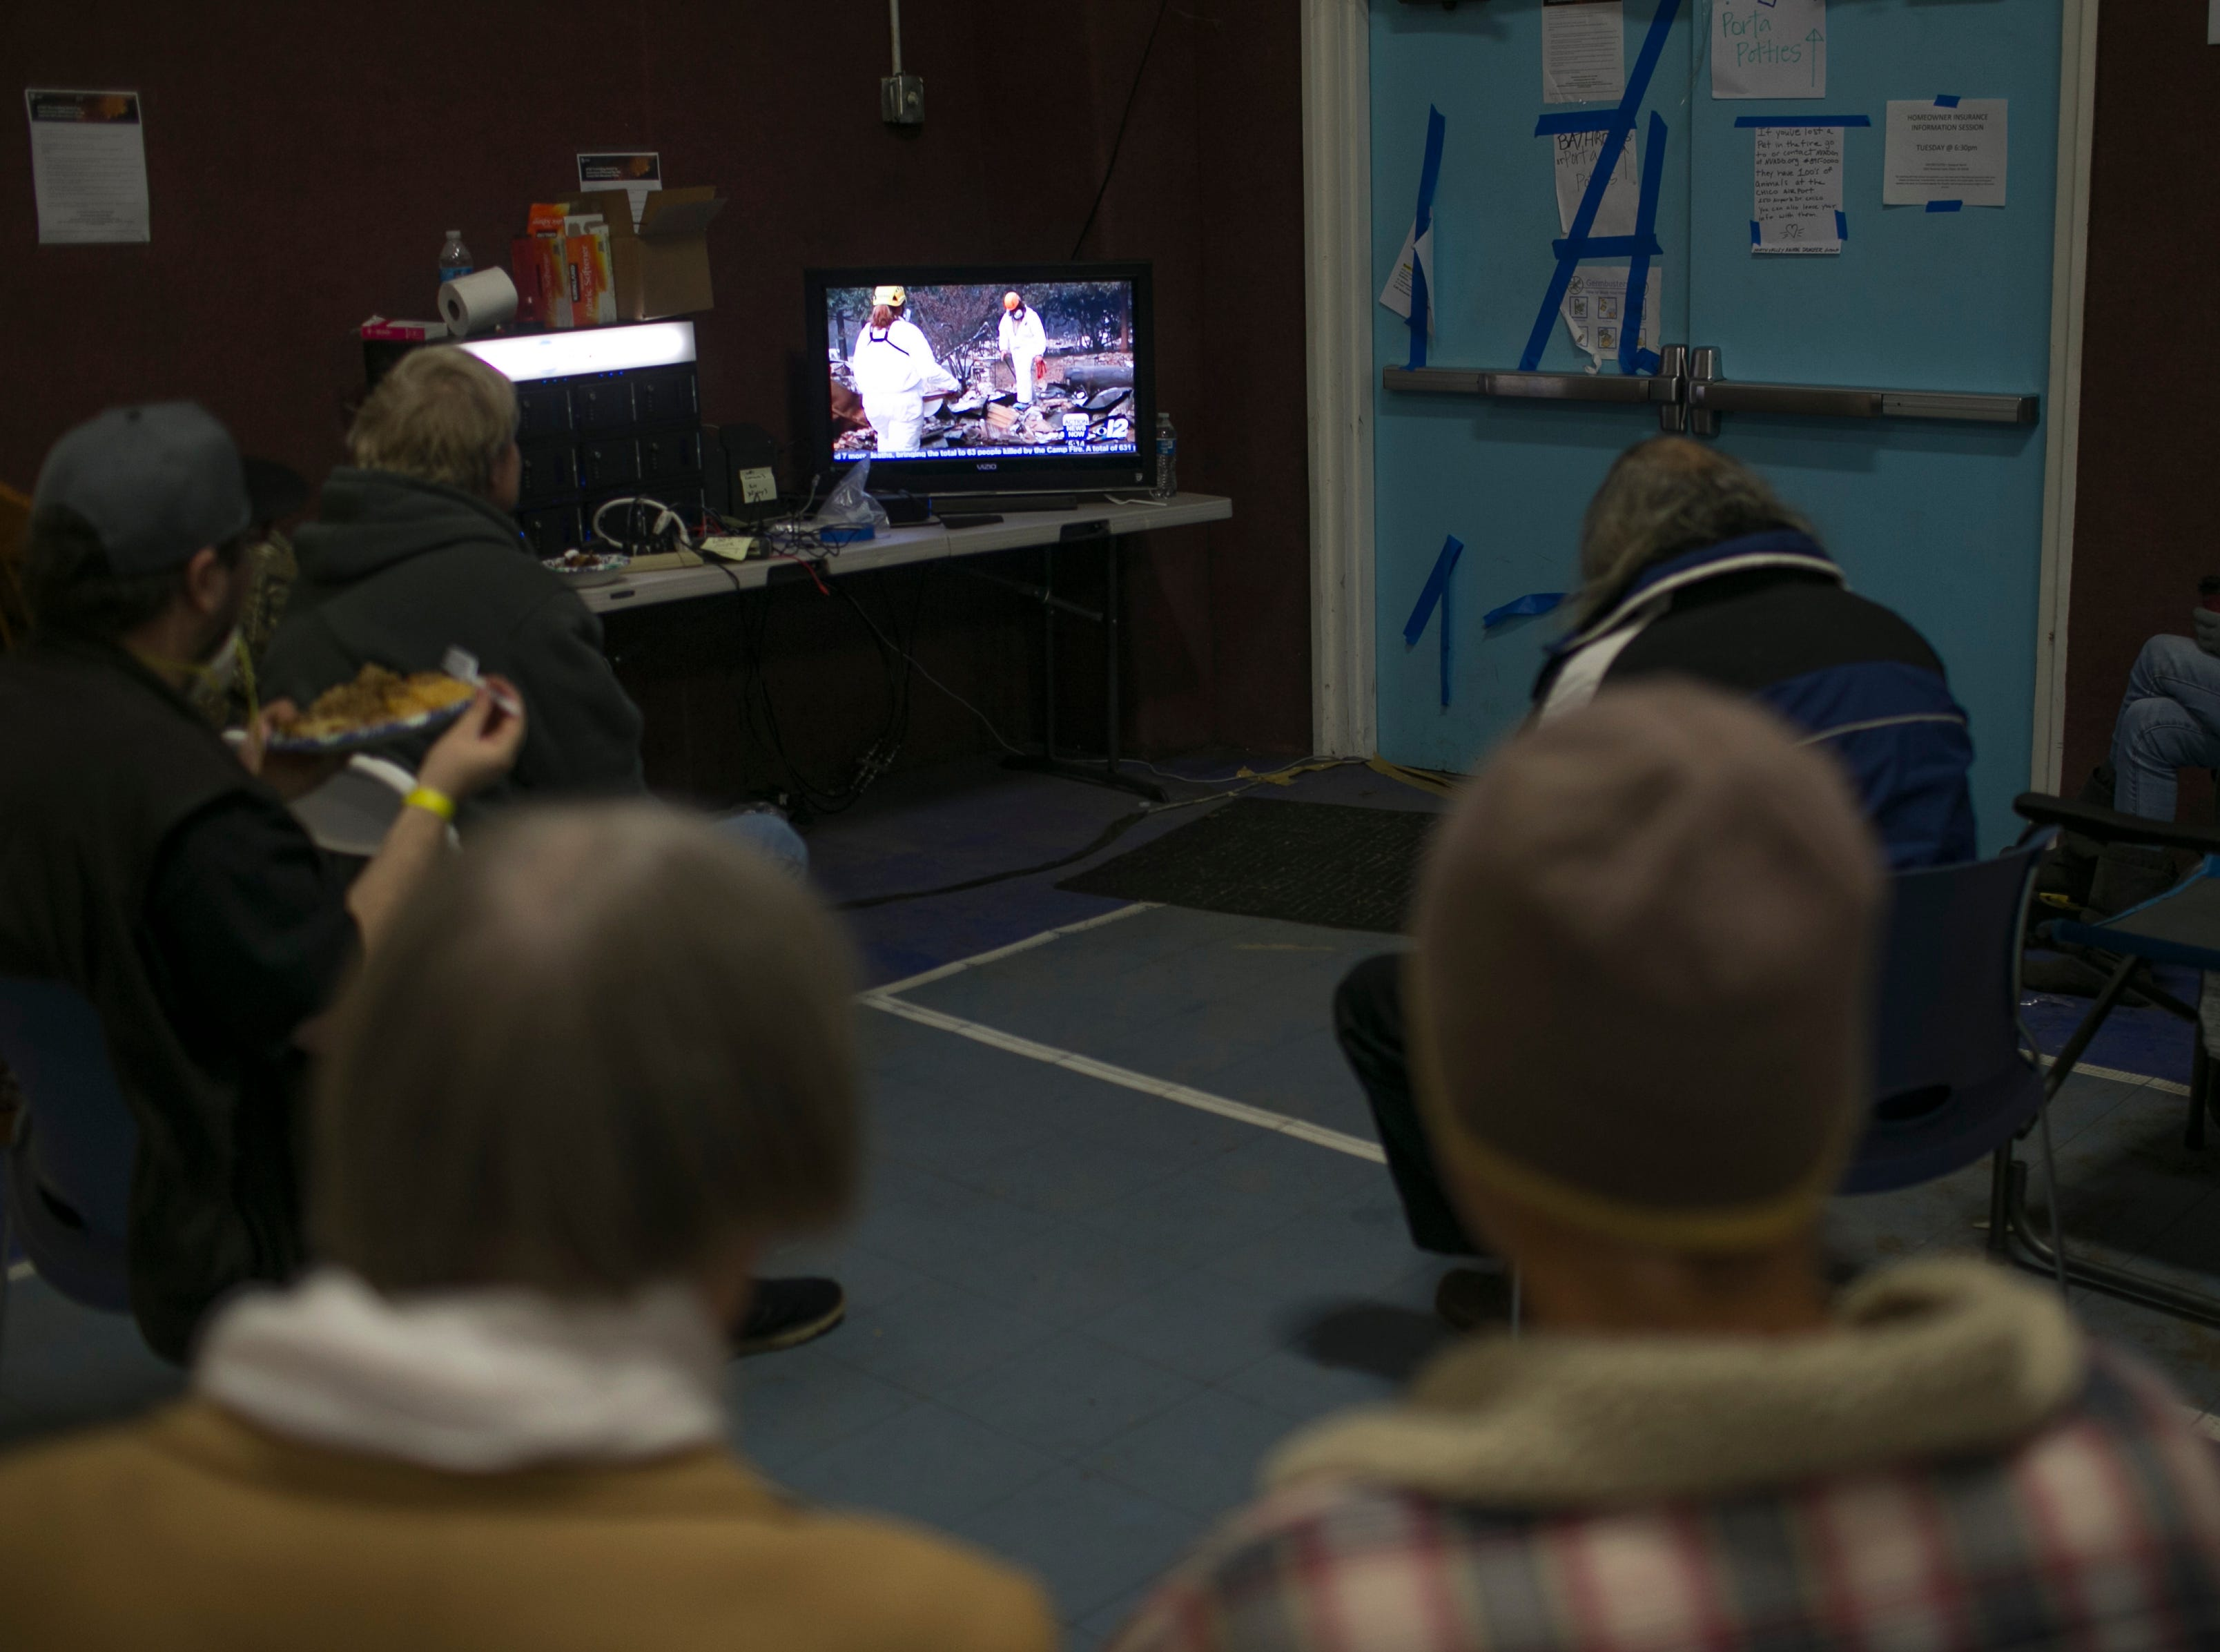 Camp Fire evacuees, many whom lost their homes and property in Paradise to the flames, watch as search teams look for human remains in Paradise on the news during dinner at the East Avenue Church Shelter in Chico, California on November 16, 2018.